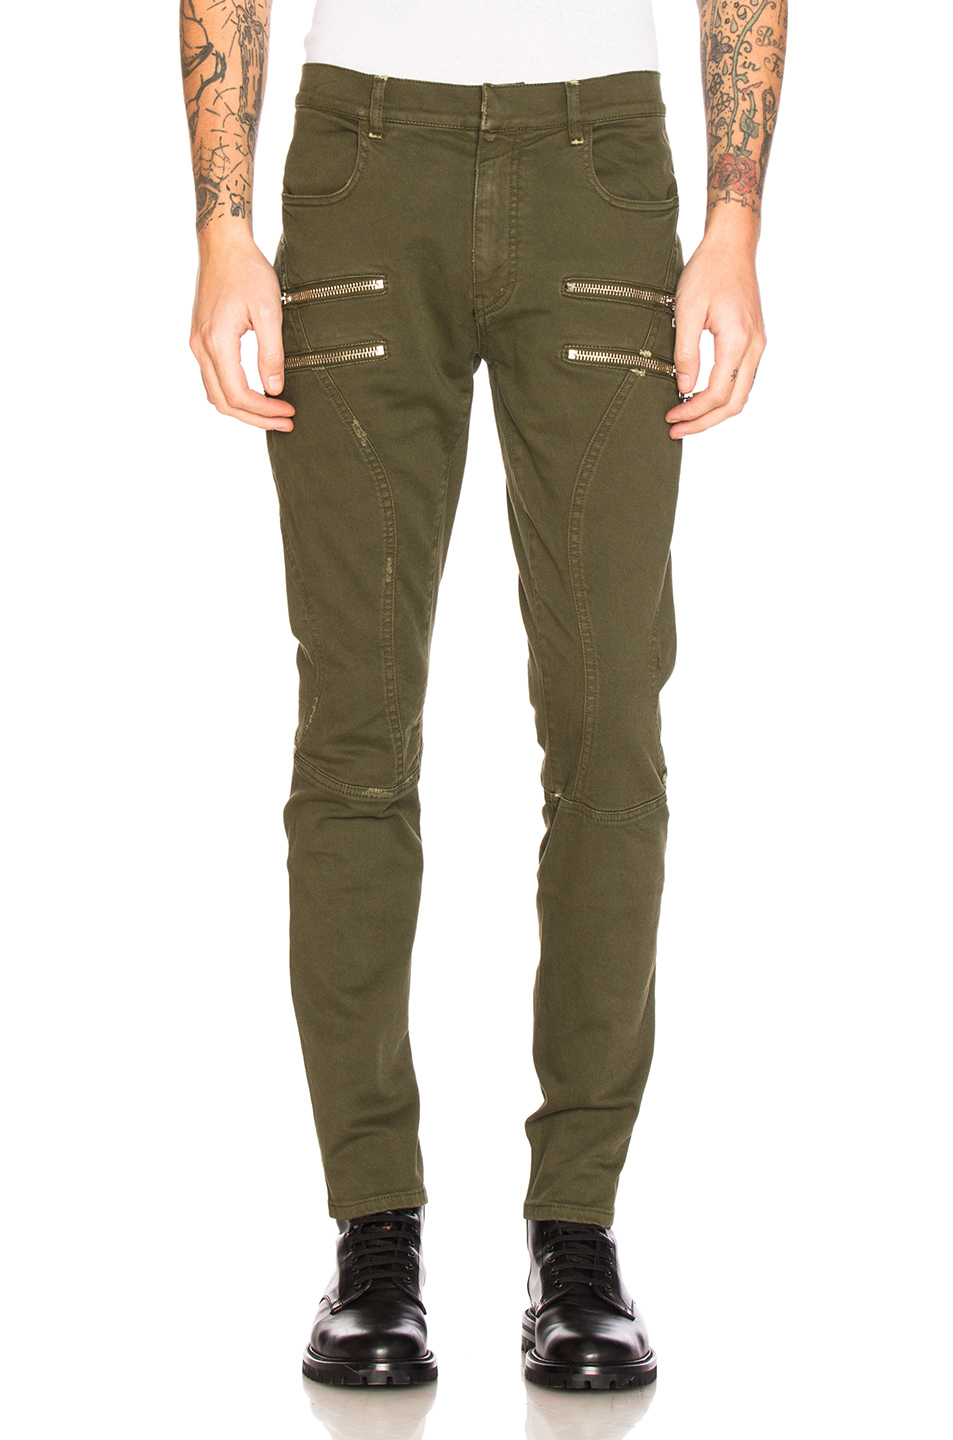 Faith Connexion Zip Run Jeans in Green